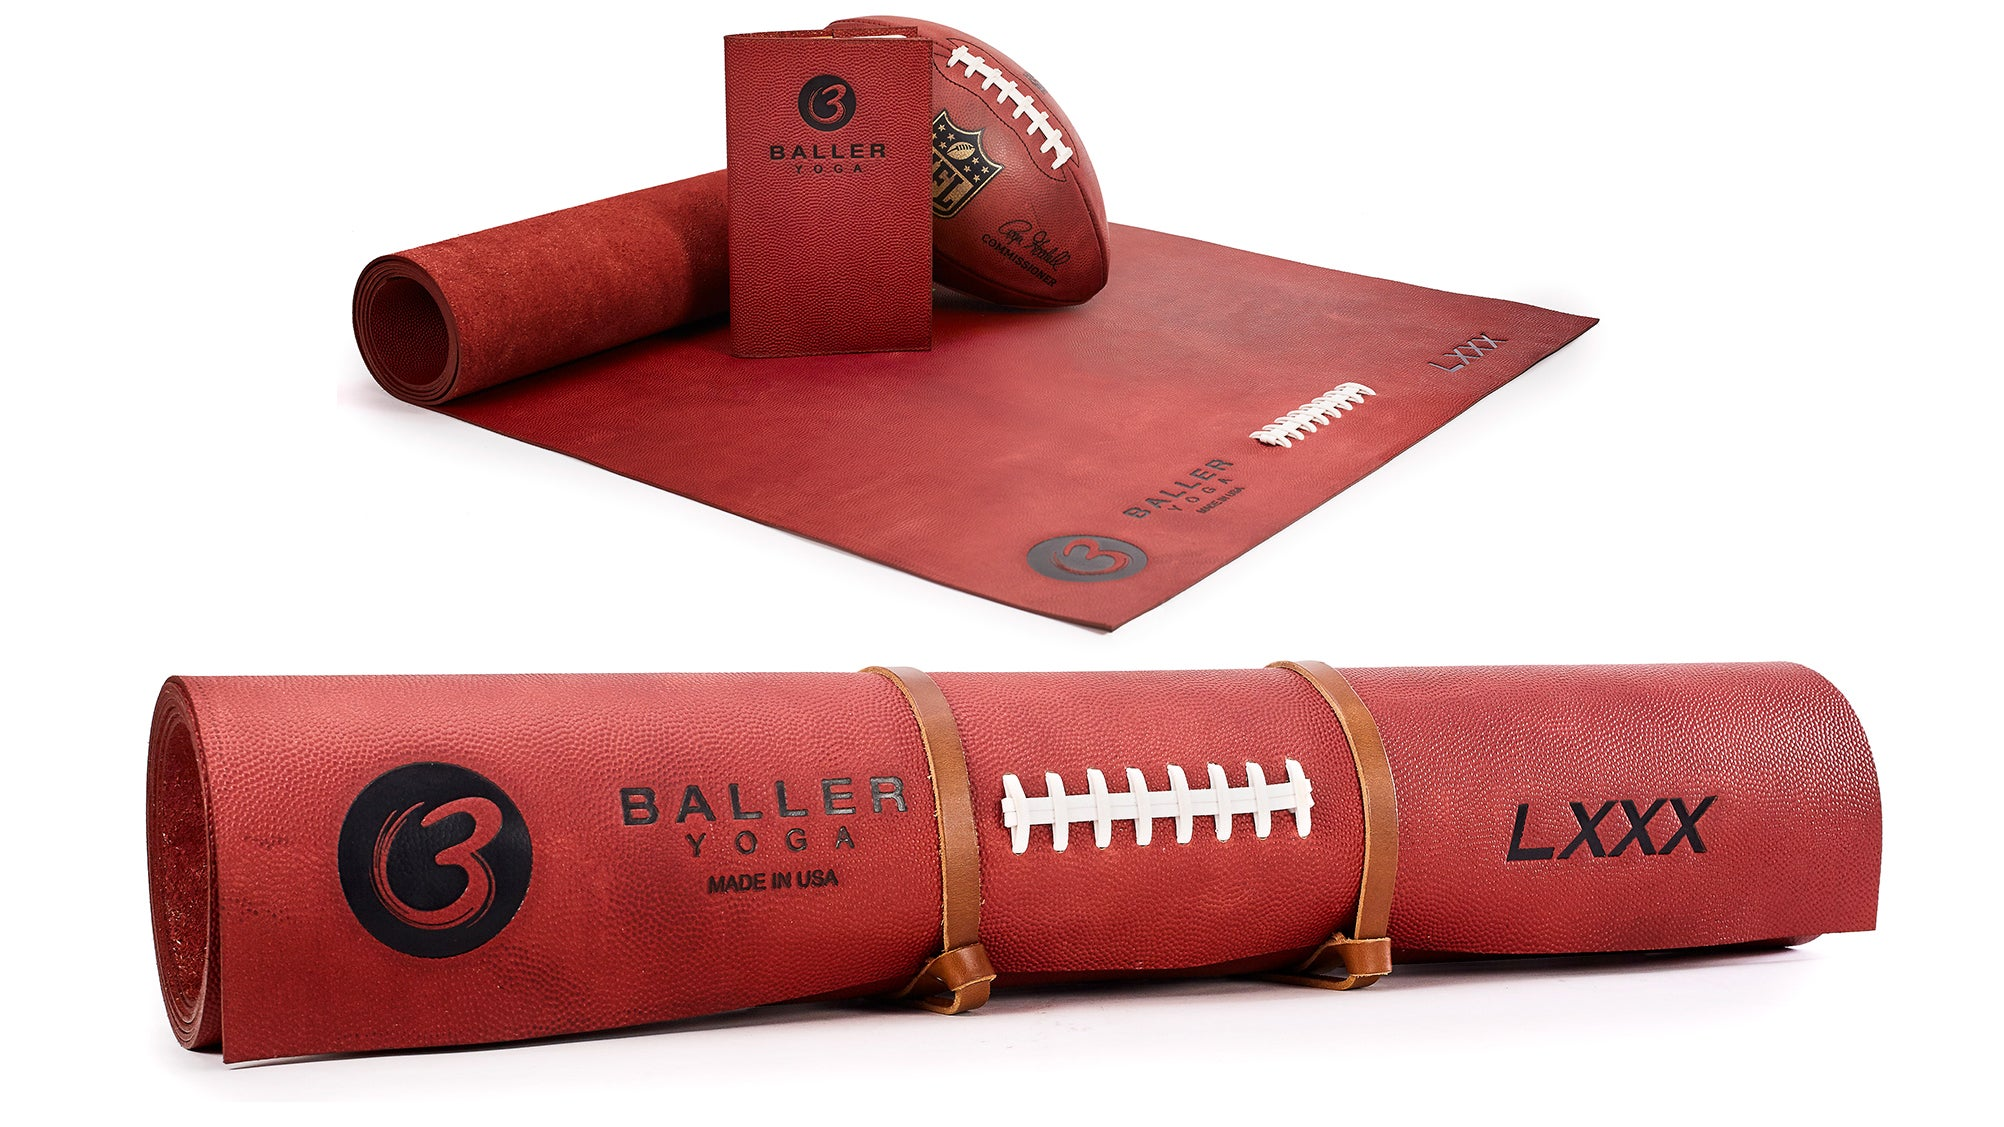 This $1,000 Yoga Mat Made From Genuine NFL Football Leather Probably Smells Amazing